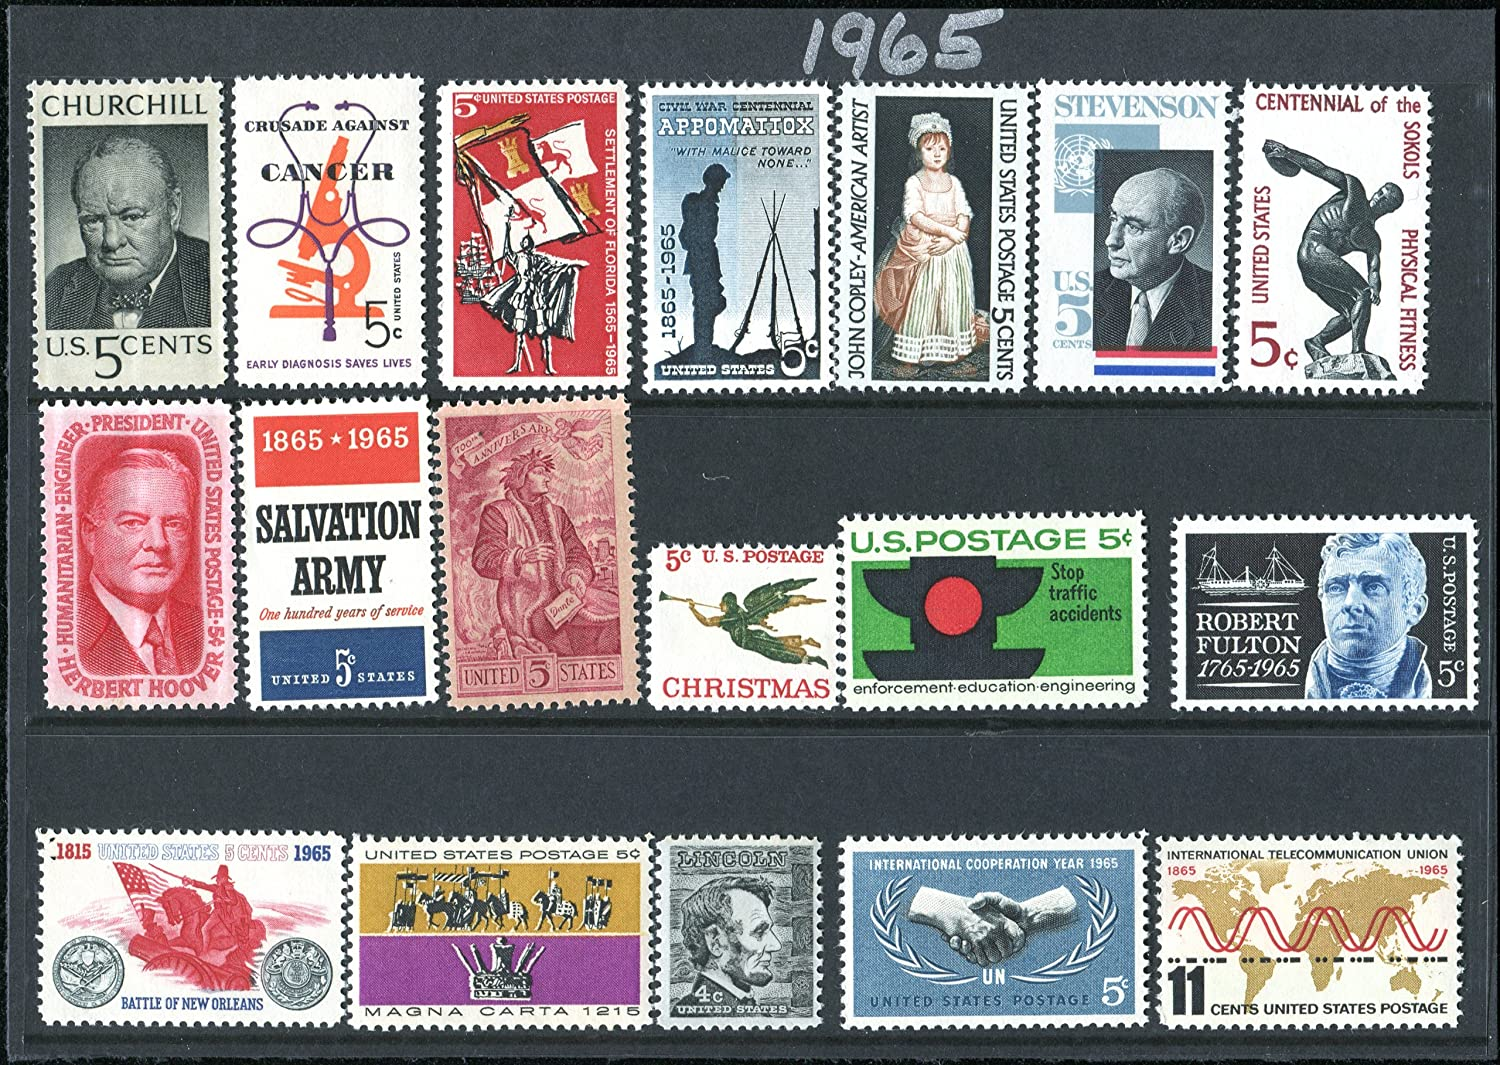 COMPLETE MINT SET OF POSTAGE STAMPS ISSUED IN THE YEAR 1965 BY THE U.S. POST OFFICE DEPT. (18 Total Stamps)